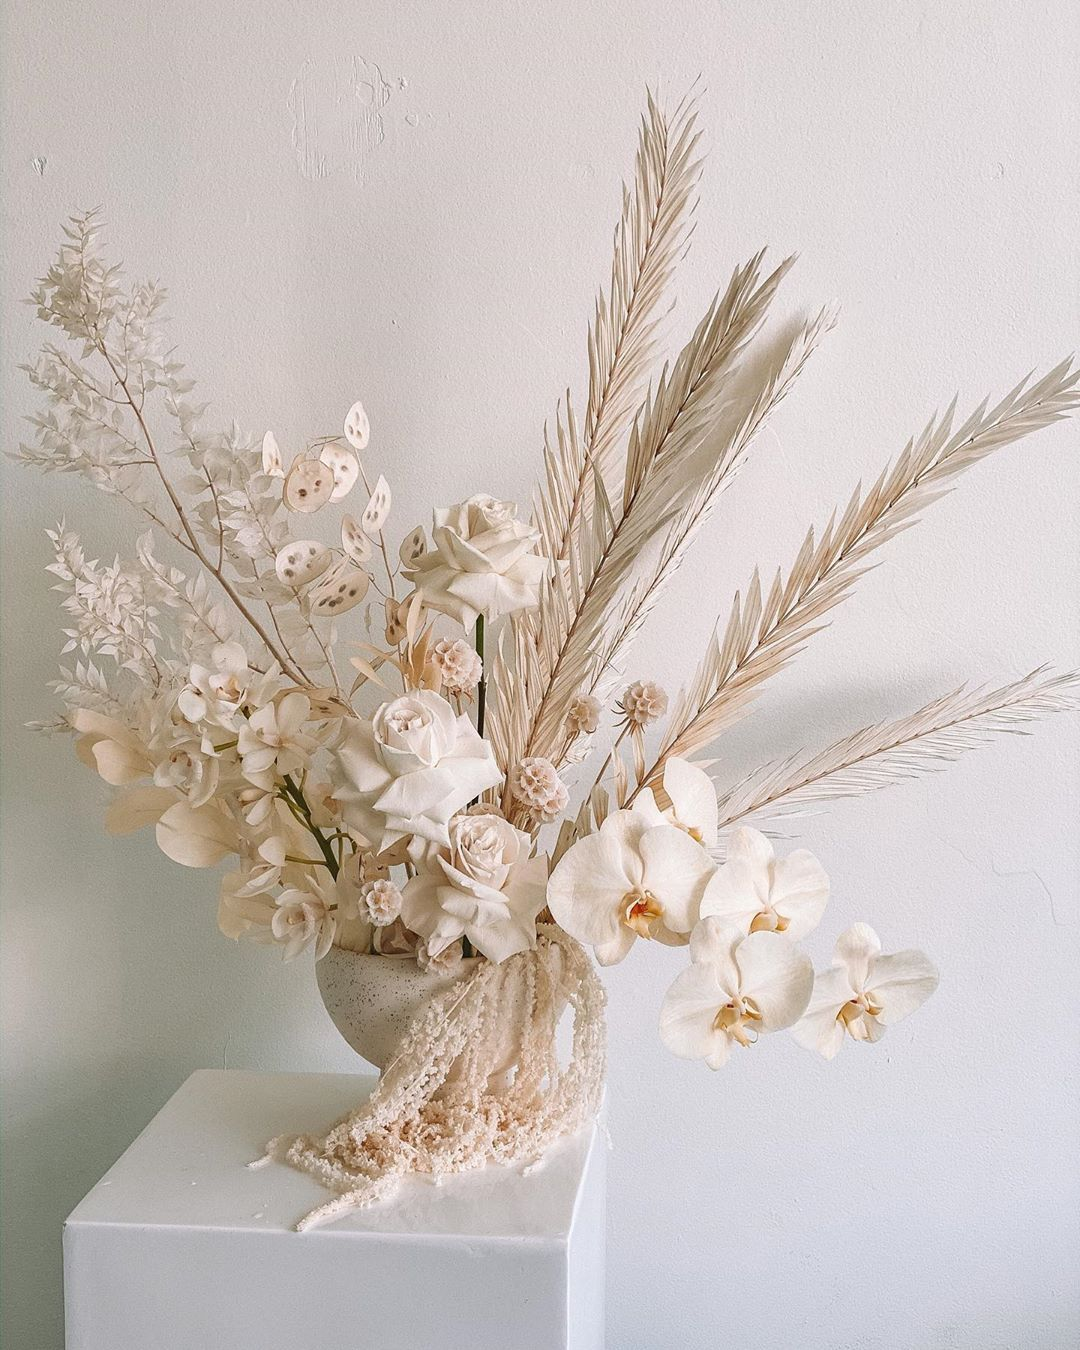 Willow Bear Sydney Florist On Instagram With The Forecast Predicting Rain Ove In 2020 Dried Flower Arrangements Artificial Flower Arrangements Flower Bouquet Diy